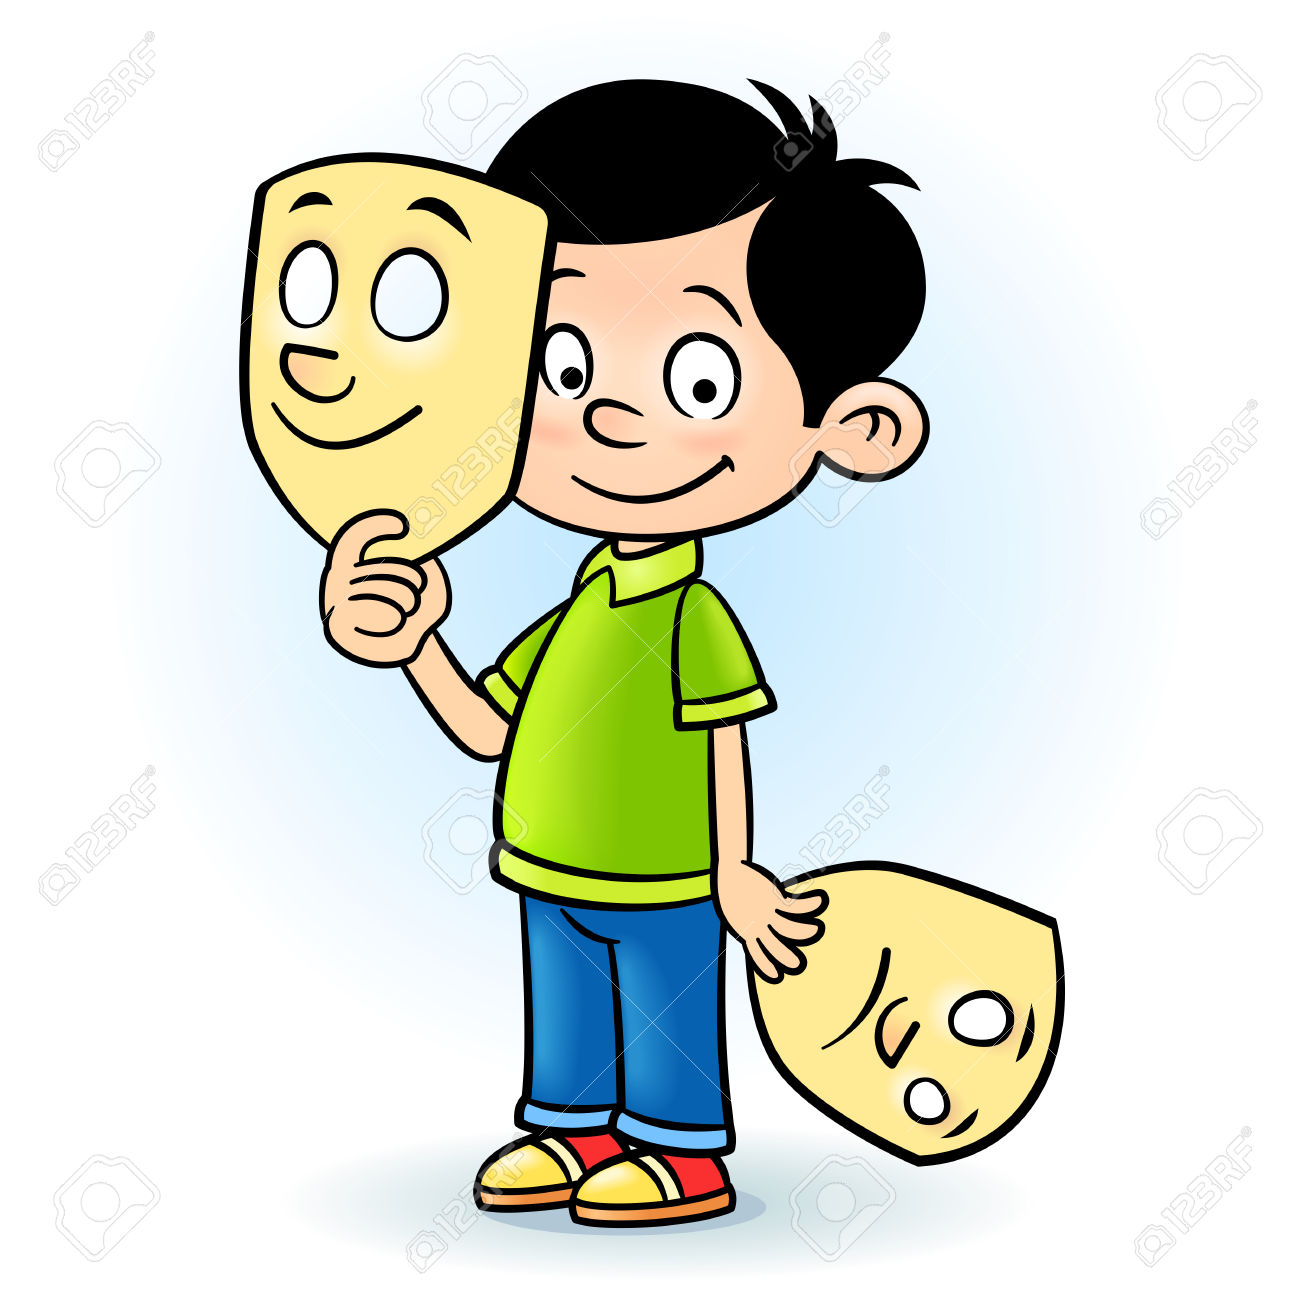 Actor Clip Art, Actor Free Clipart.